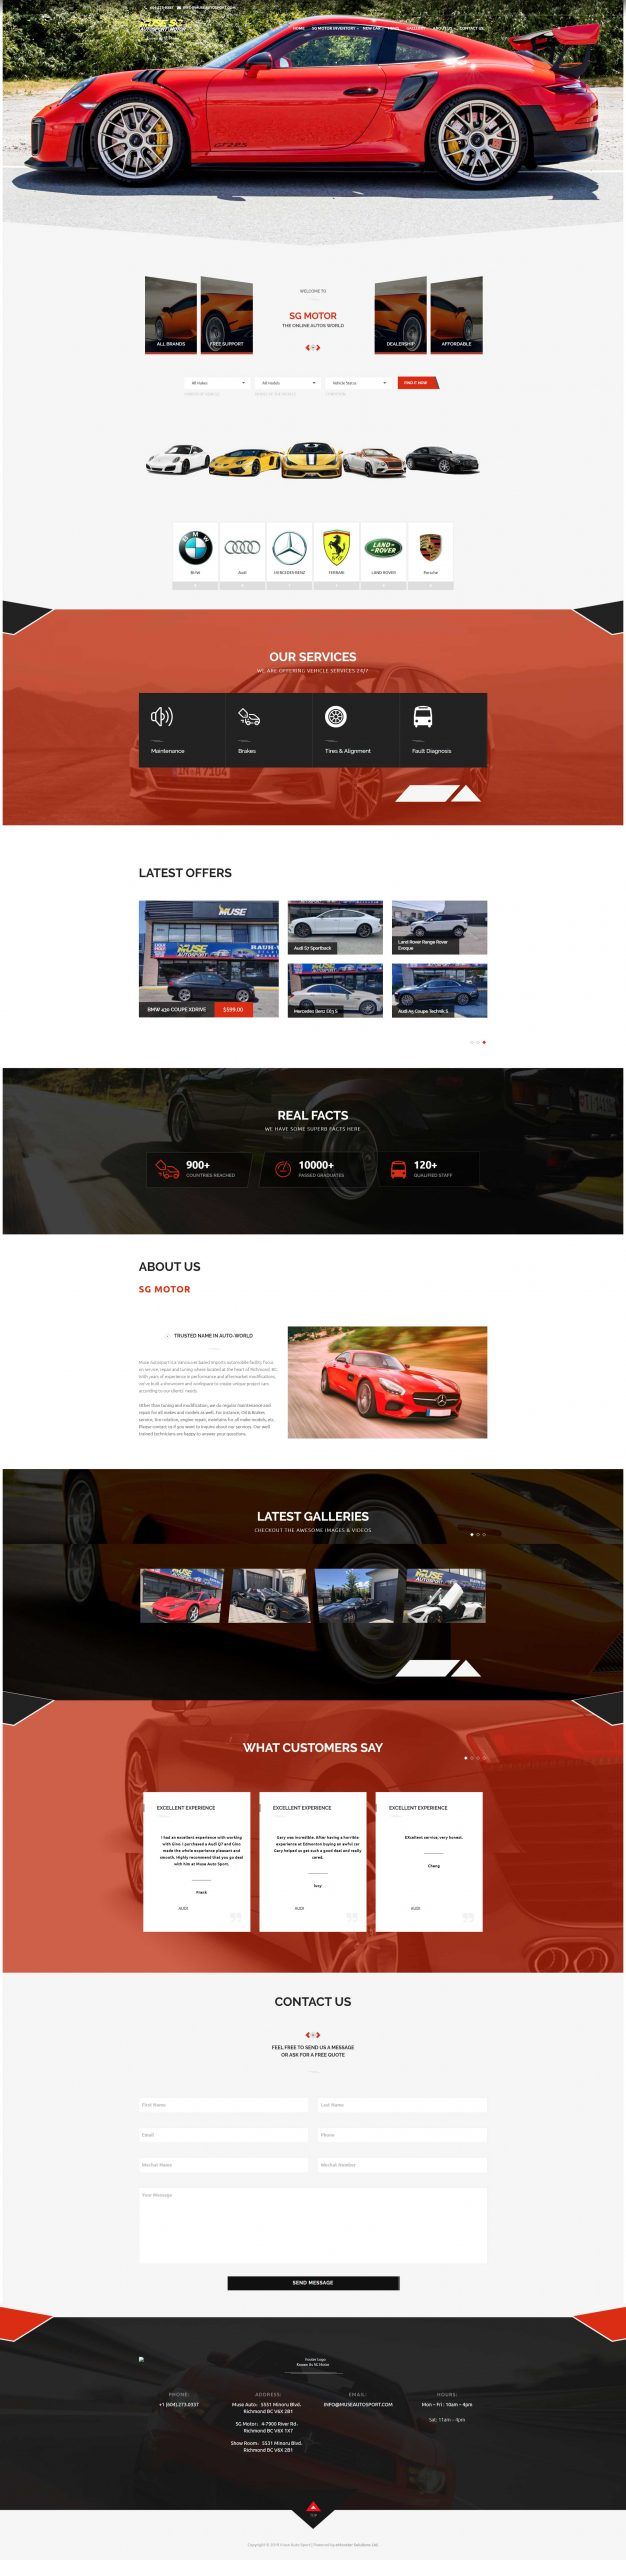 museautosport_web_development